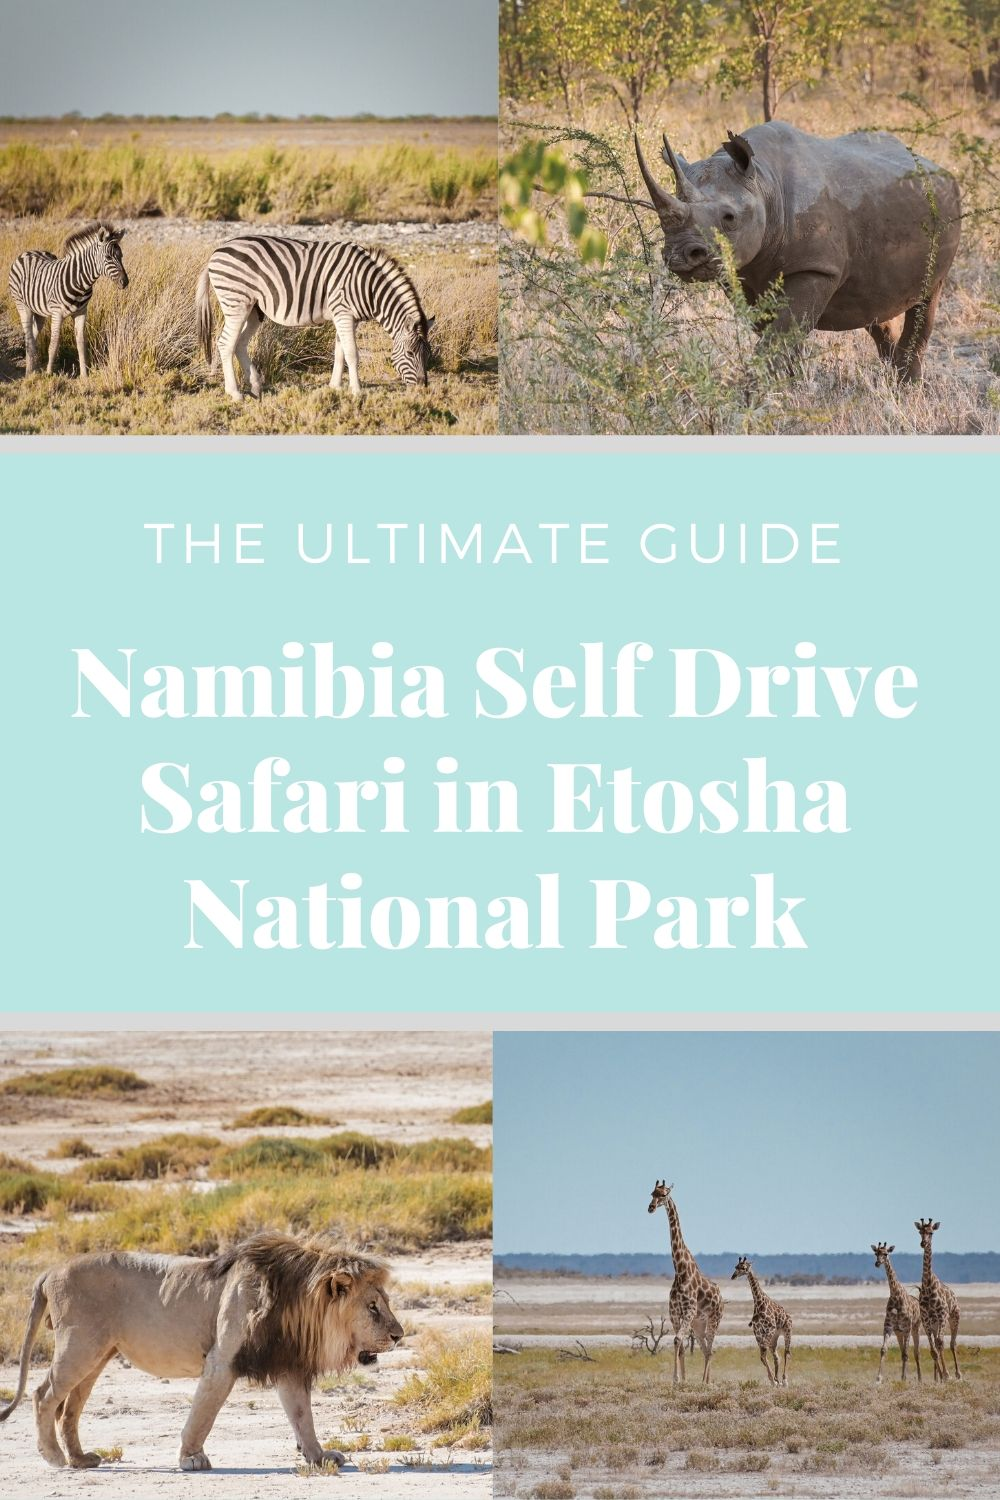 Namibia self drive safari in Etosha National Park guide